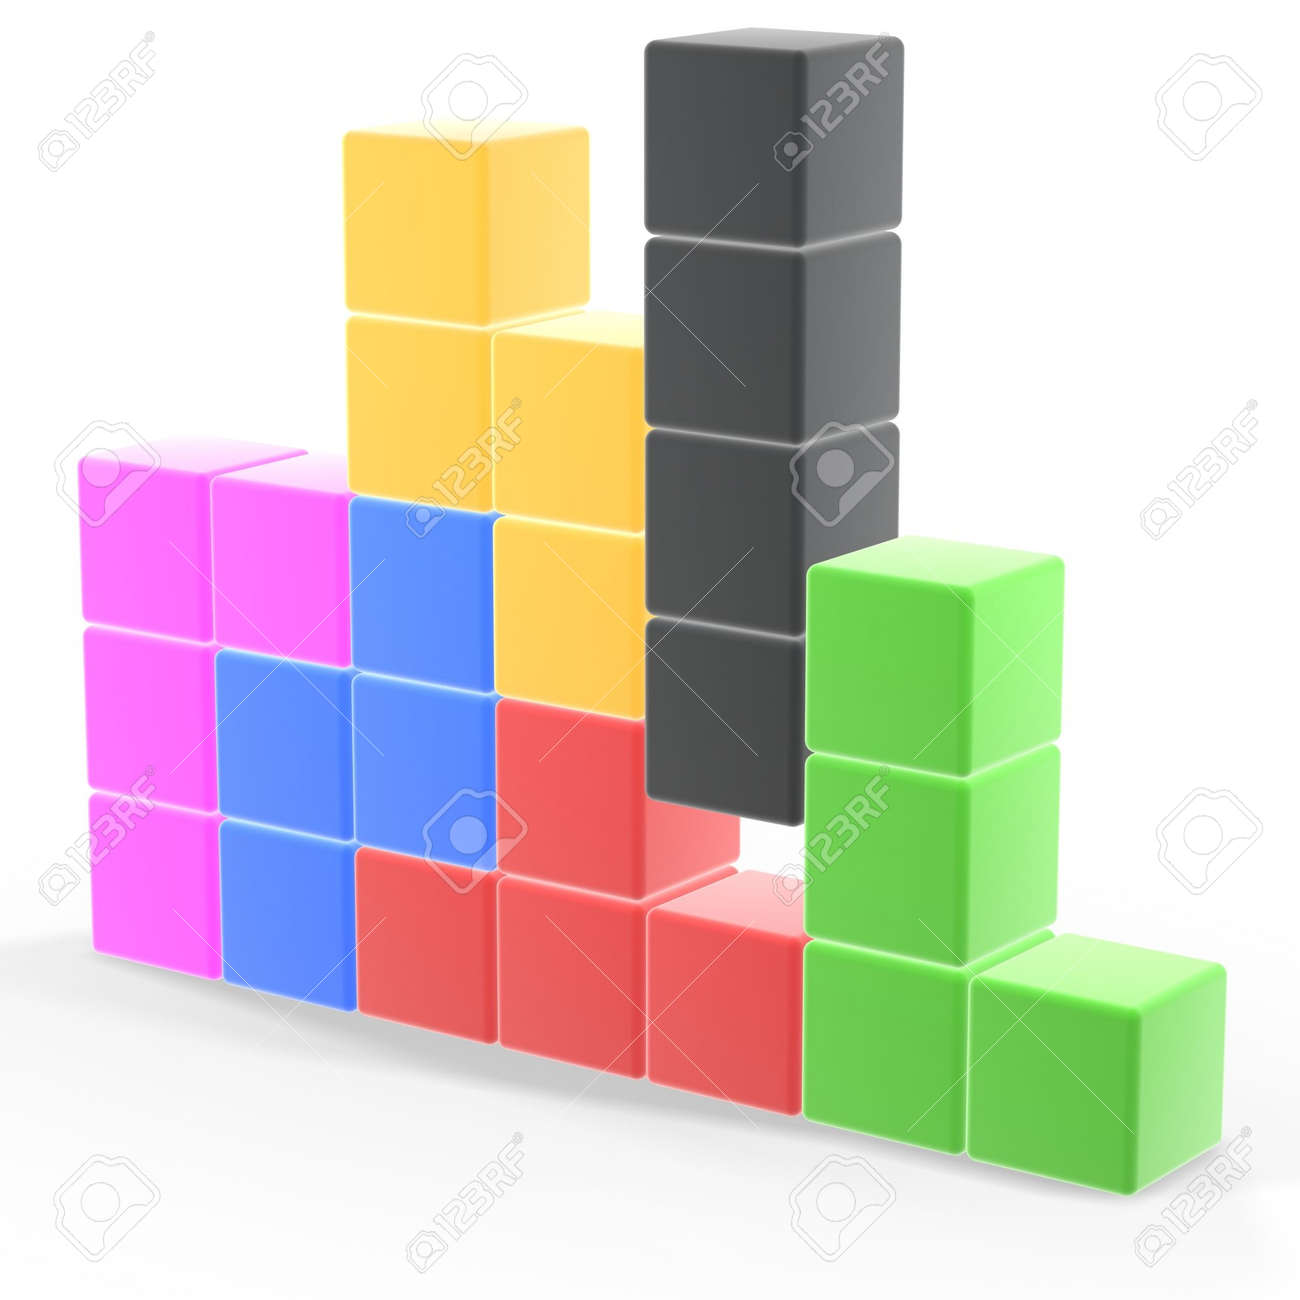 classic tetris game pieces fit together